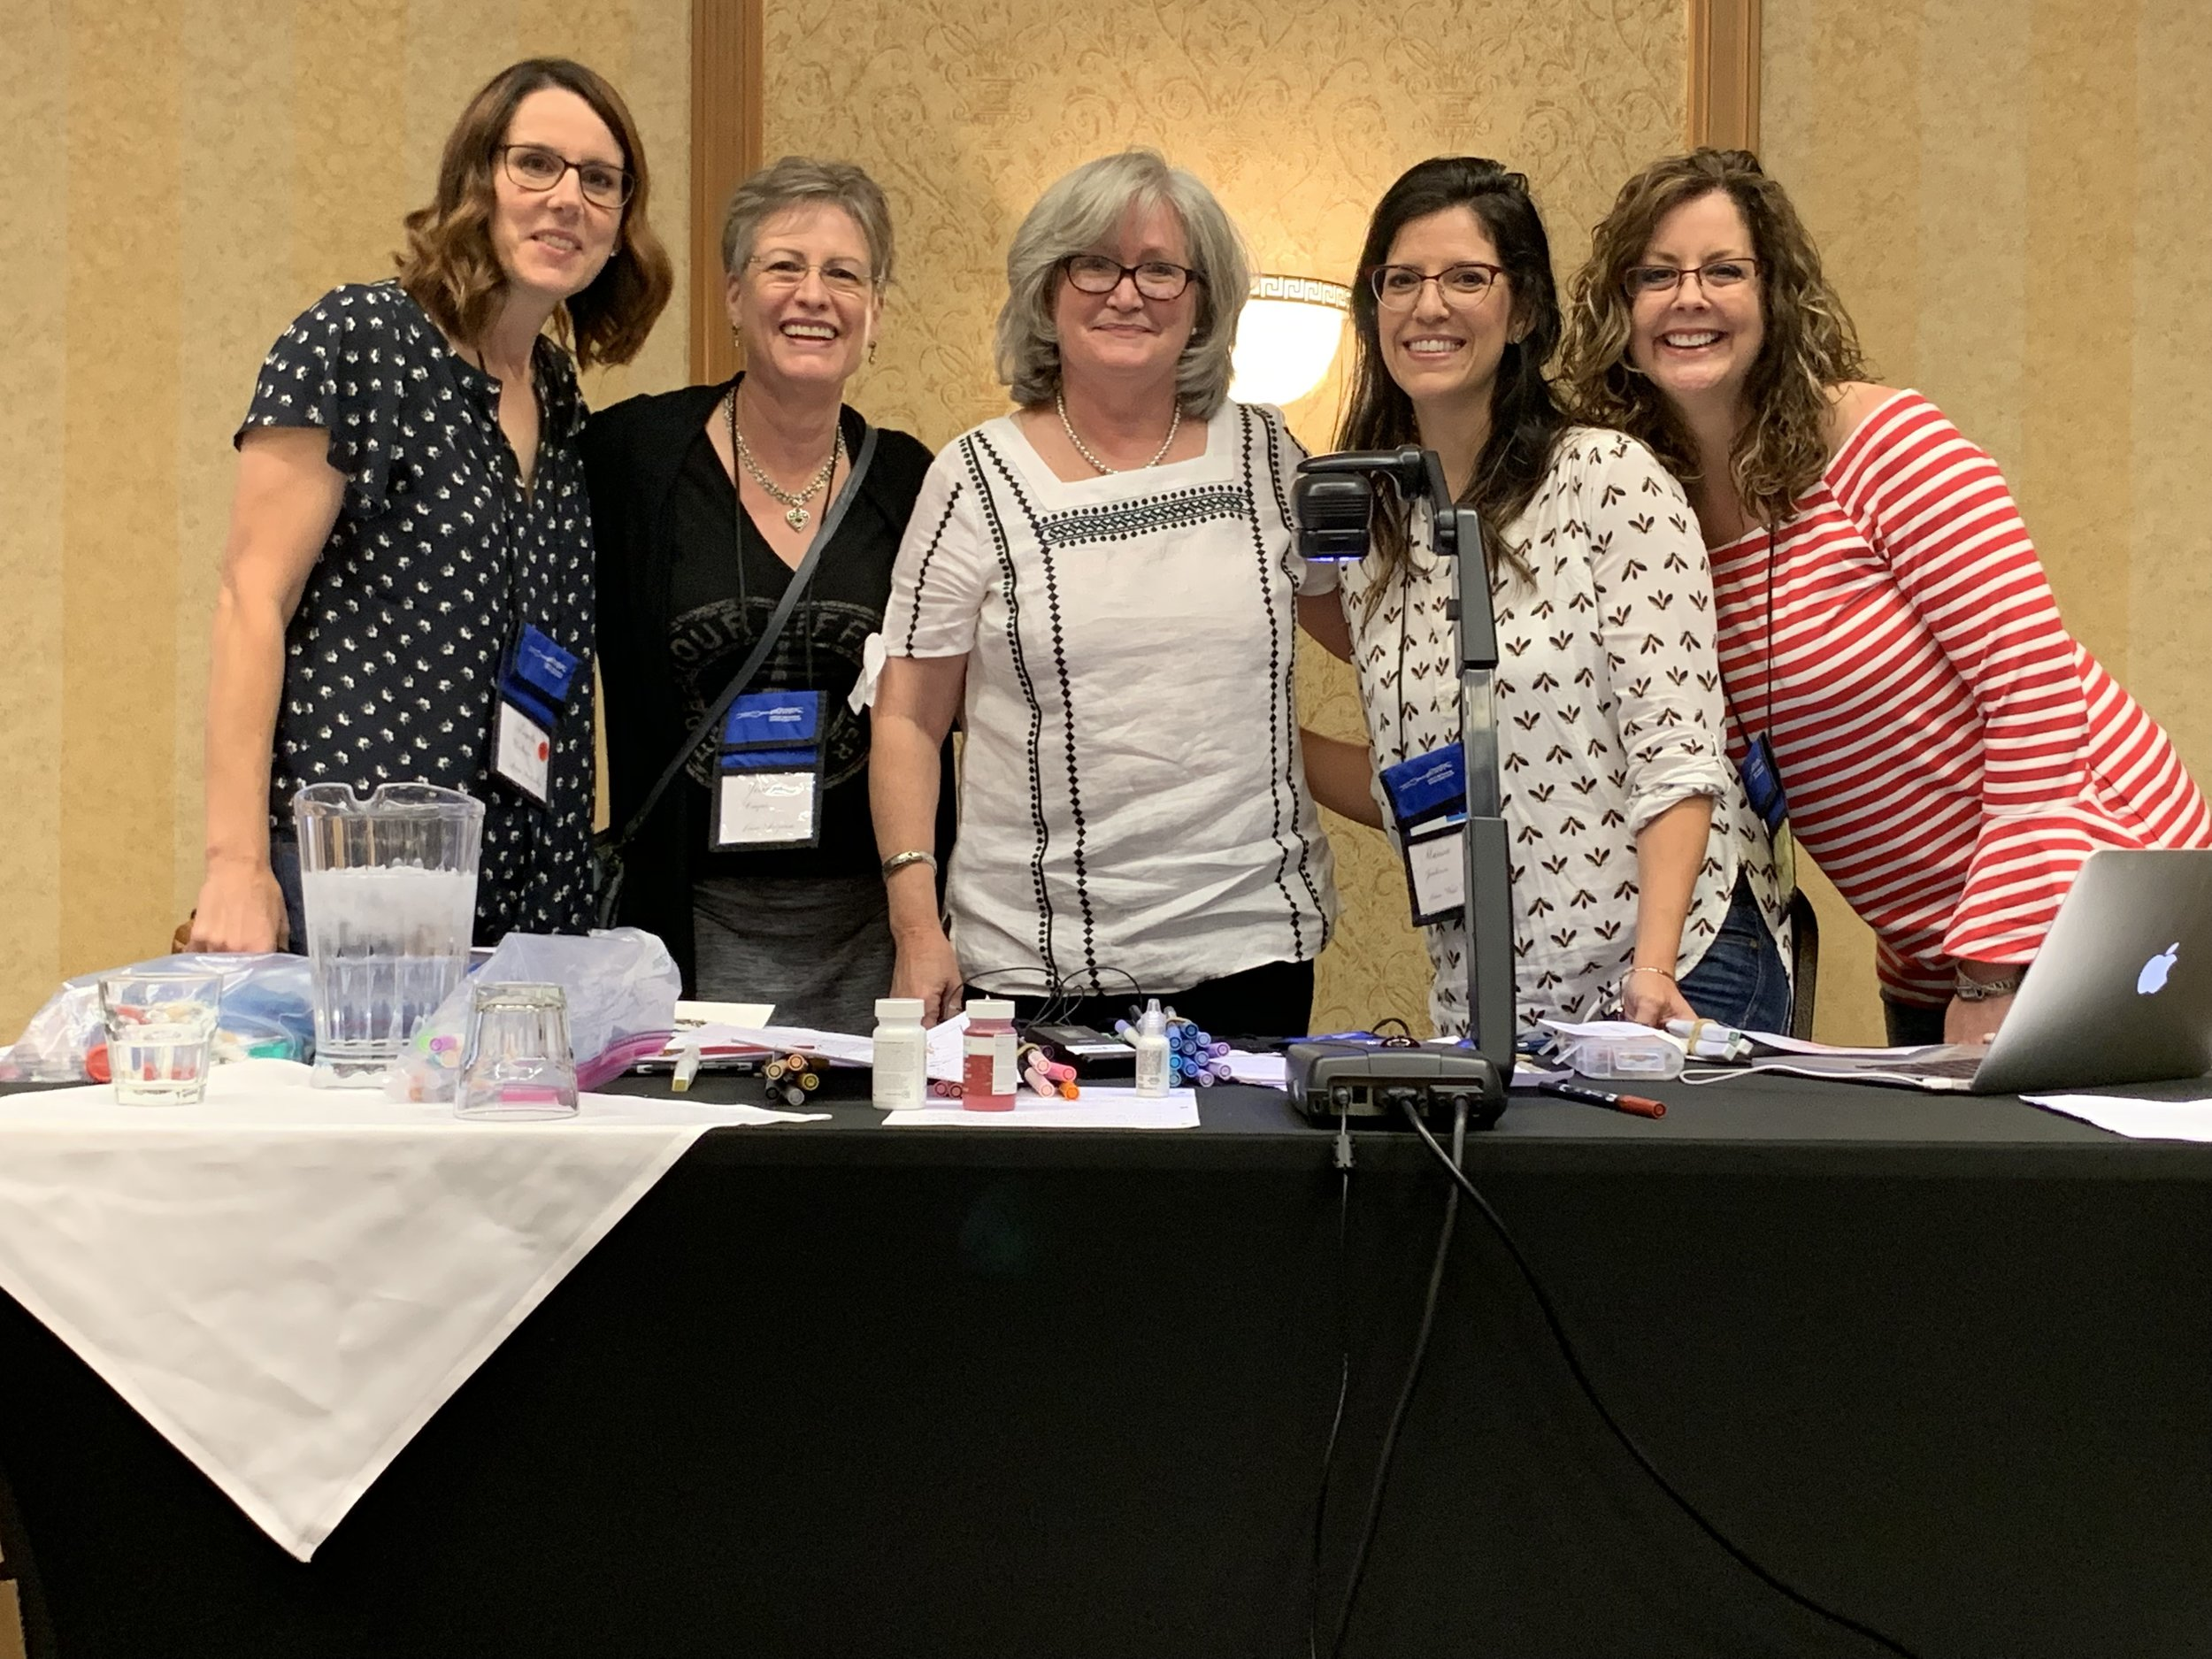 The incredible Angela Welch teaching wedding certificate design! Pictured Angie, JoDean, Angela, Marisa, and Melissa 2019